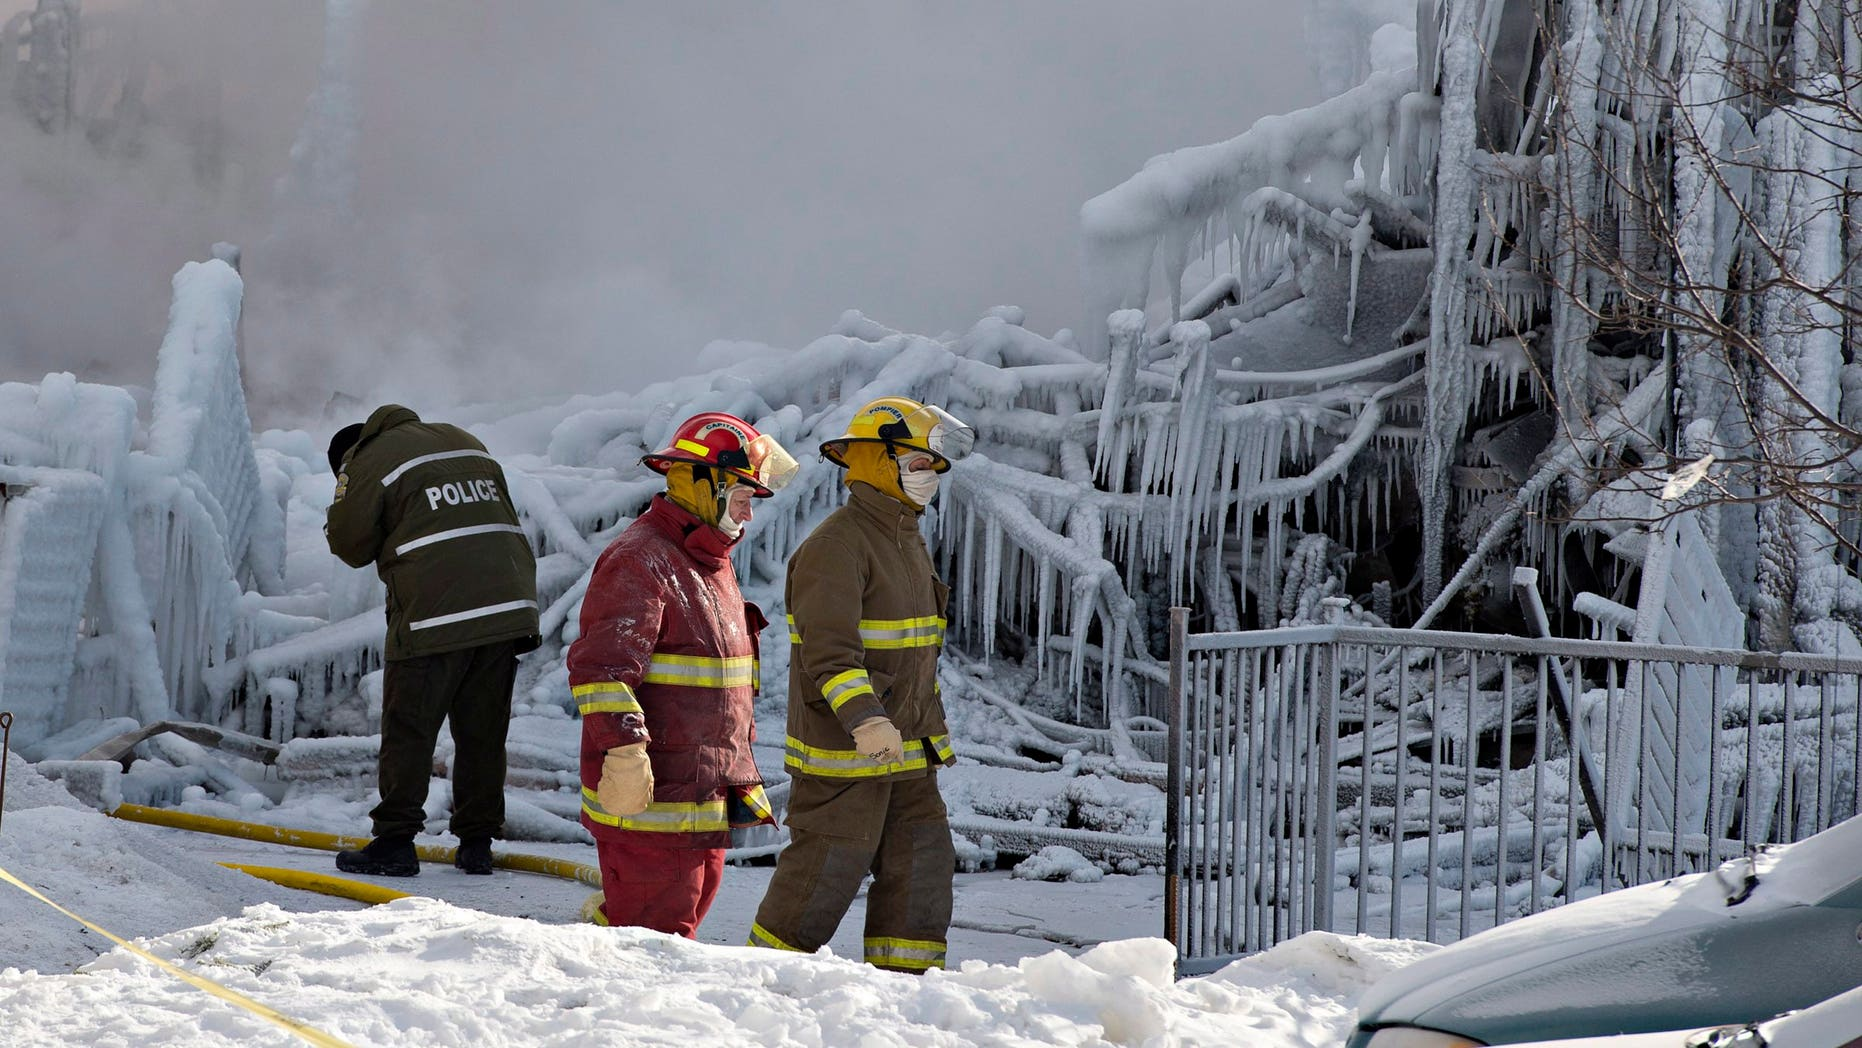 Jan. 23, 2014 - Police and firefighters survey the damage after a fatal fire at a seniors residence in L'Isle-Verte, Quebec. The fire raged through the seniors residence, killing at least 5 people and leaving about 30 unaccounted for.